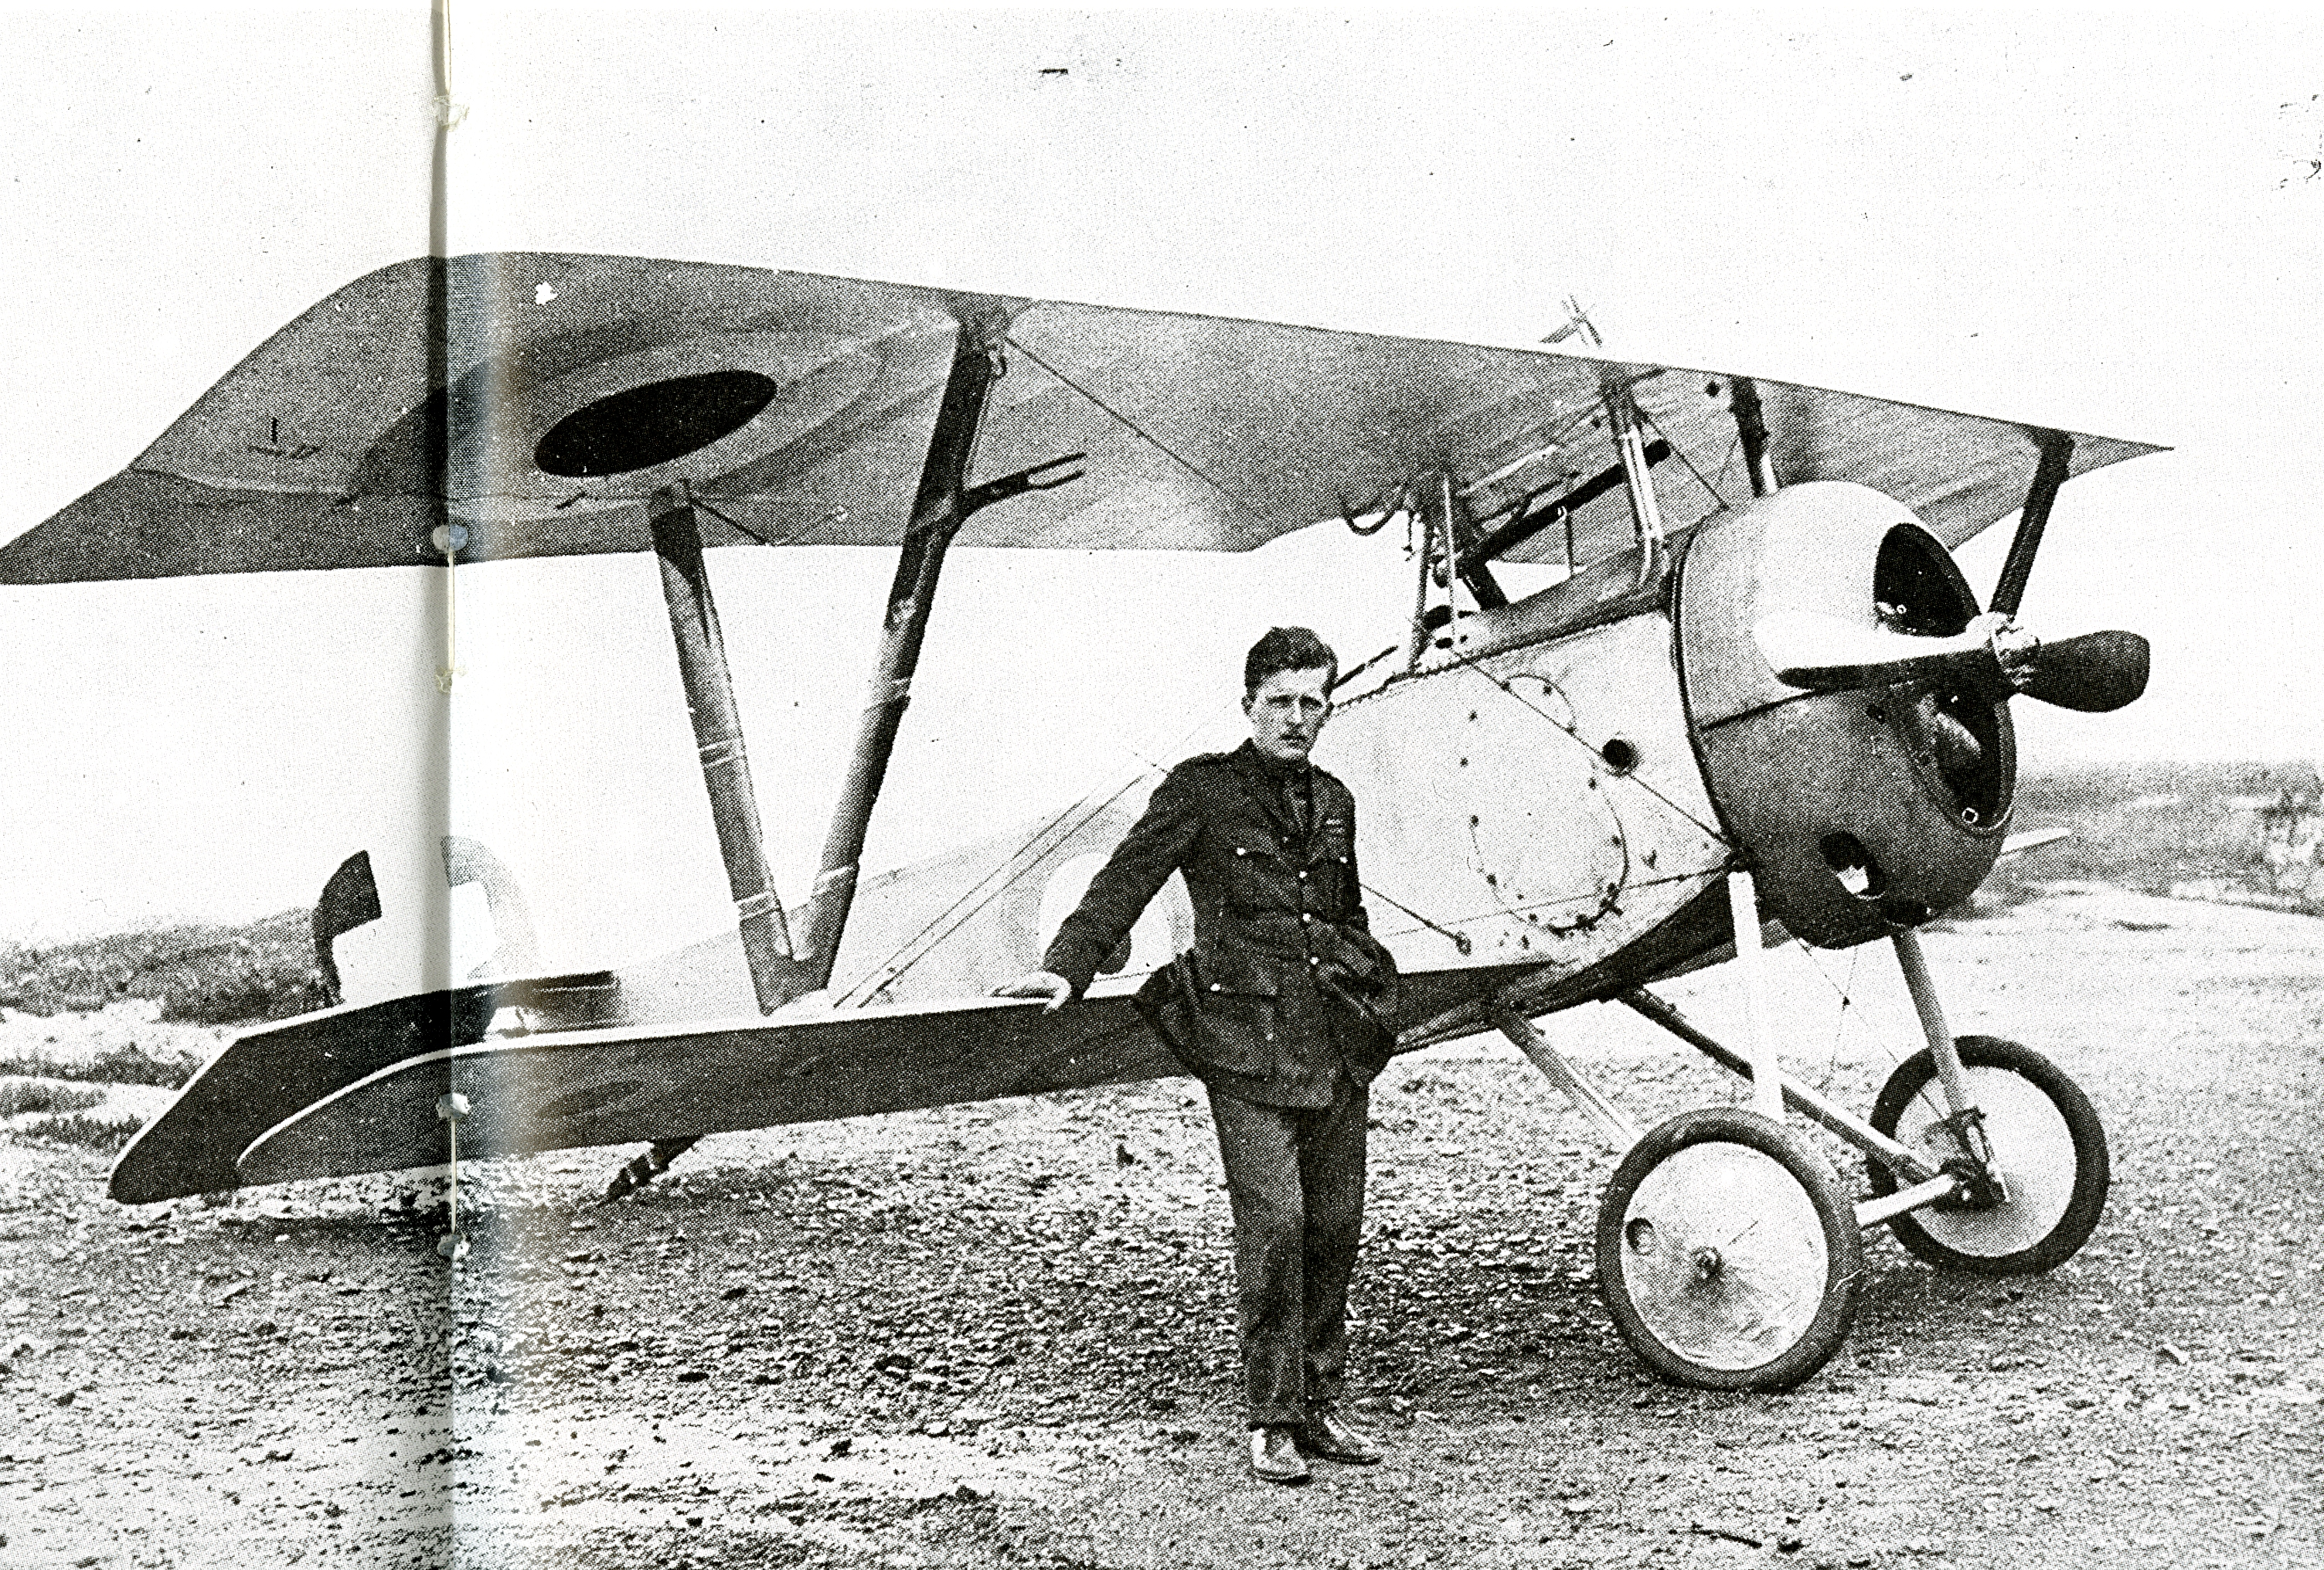 Billy Bishop and his Plane